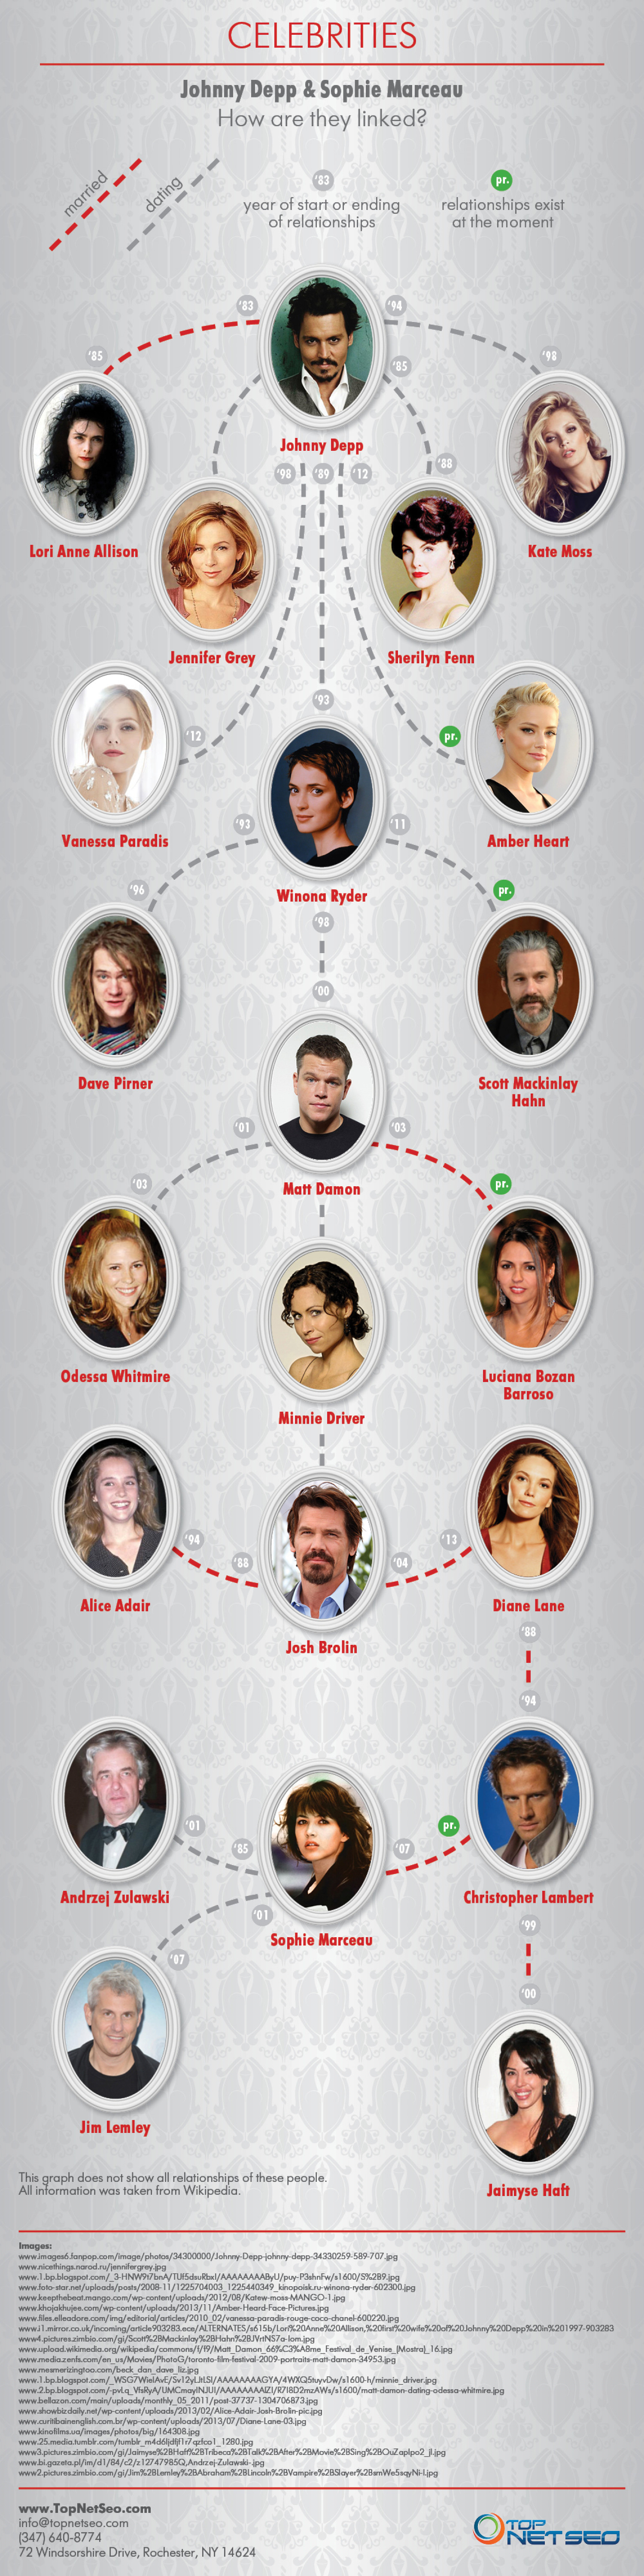 Celebrities marriages and dating. Johnny Depp, Sophie Marceau, Matt Damon and others. How are they linked? Infographic